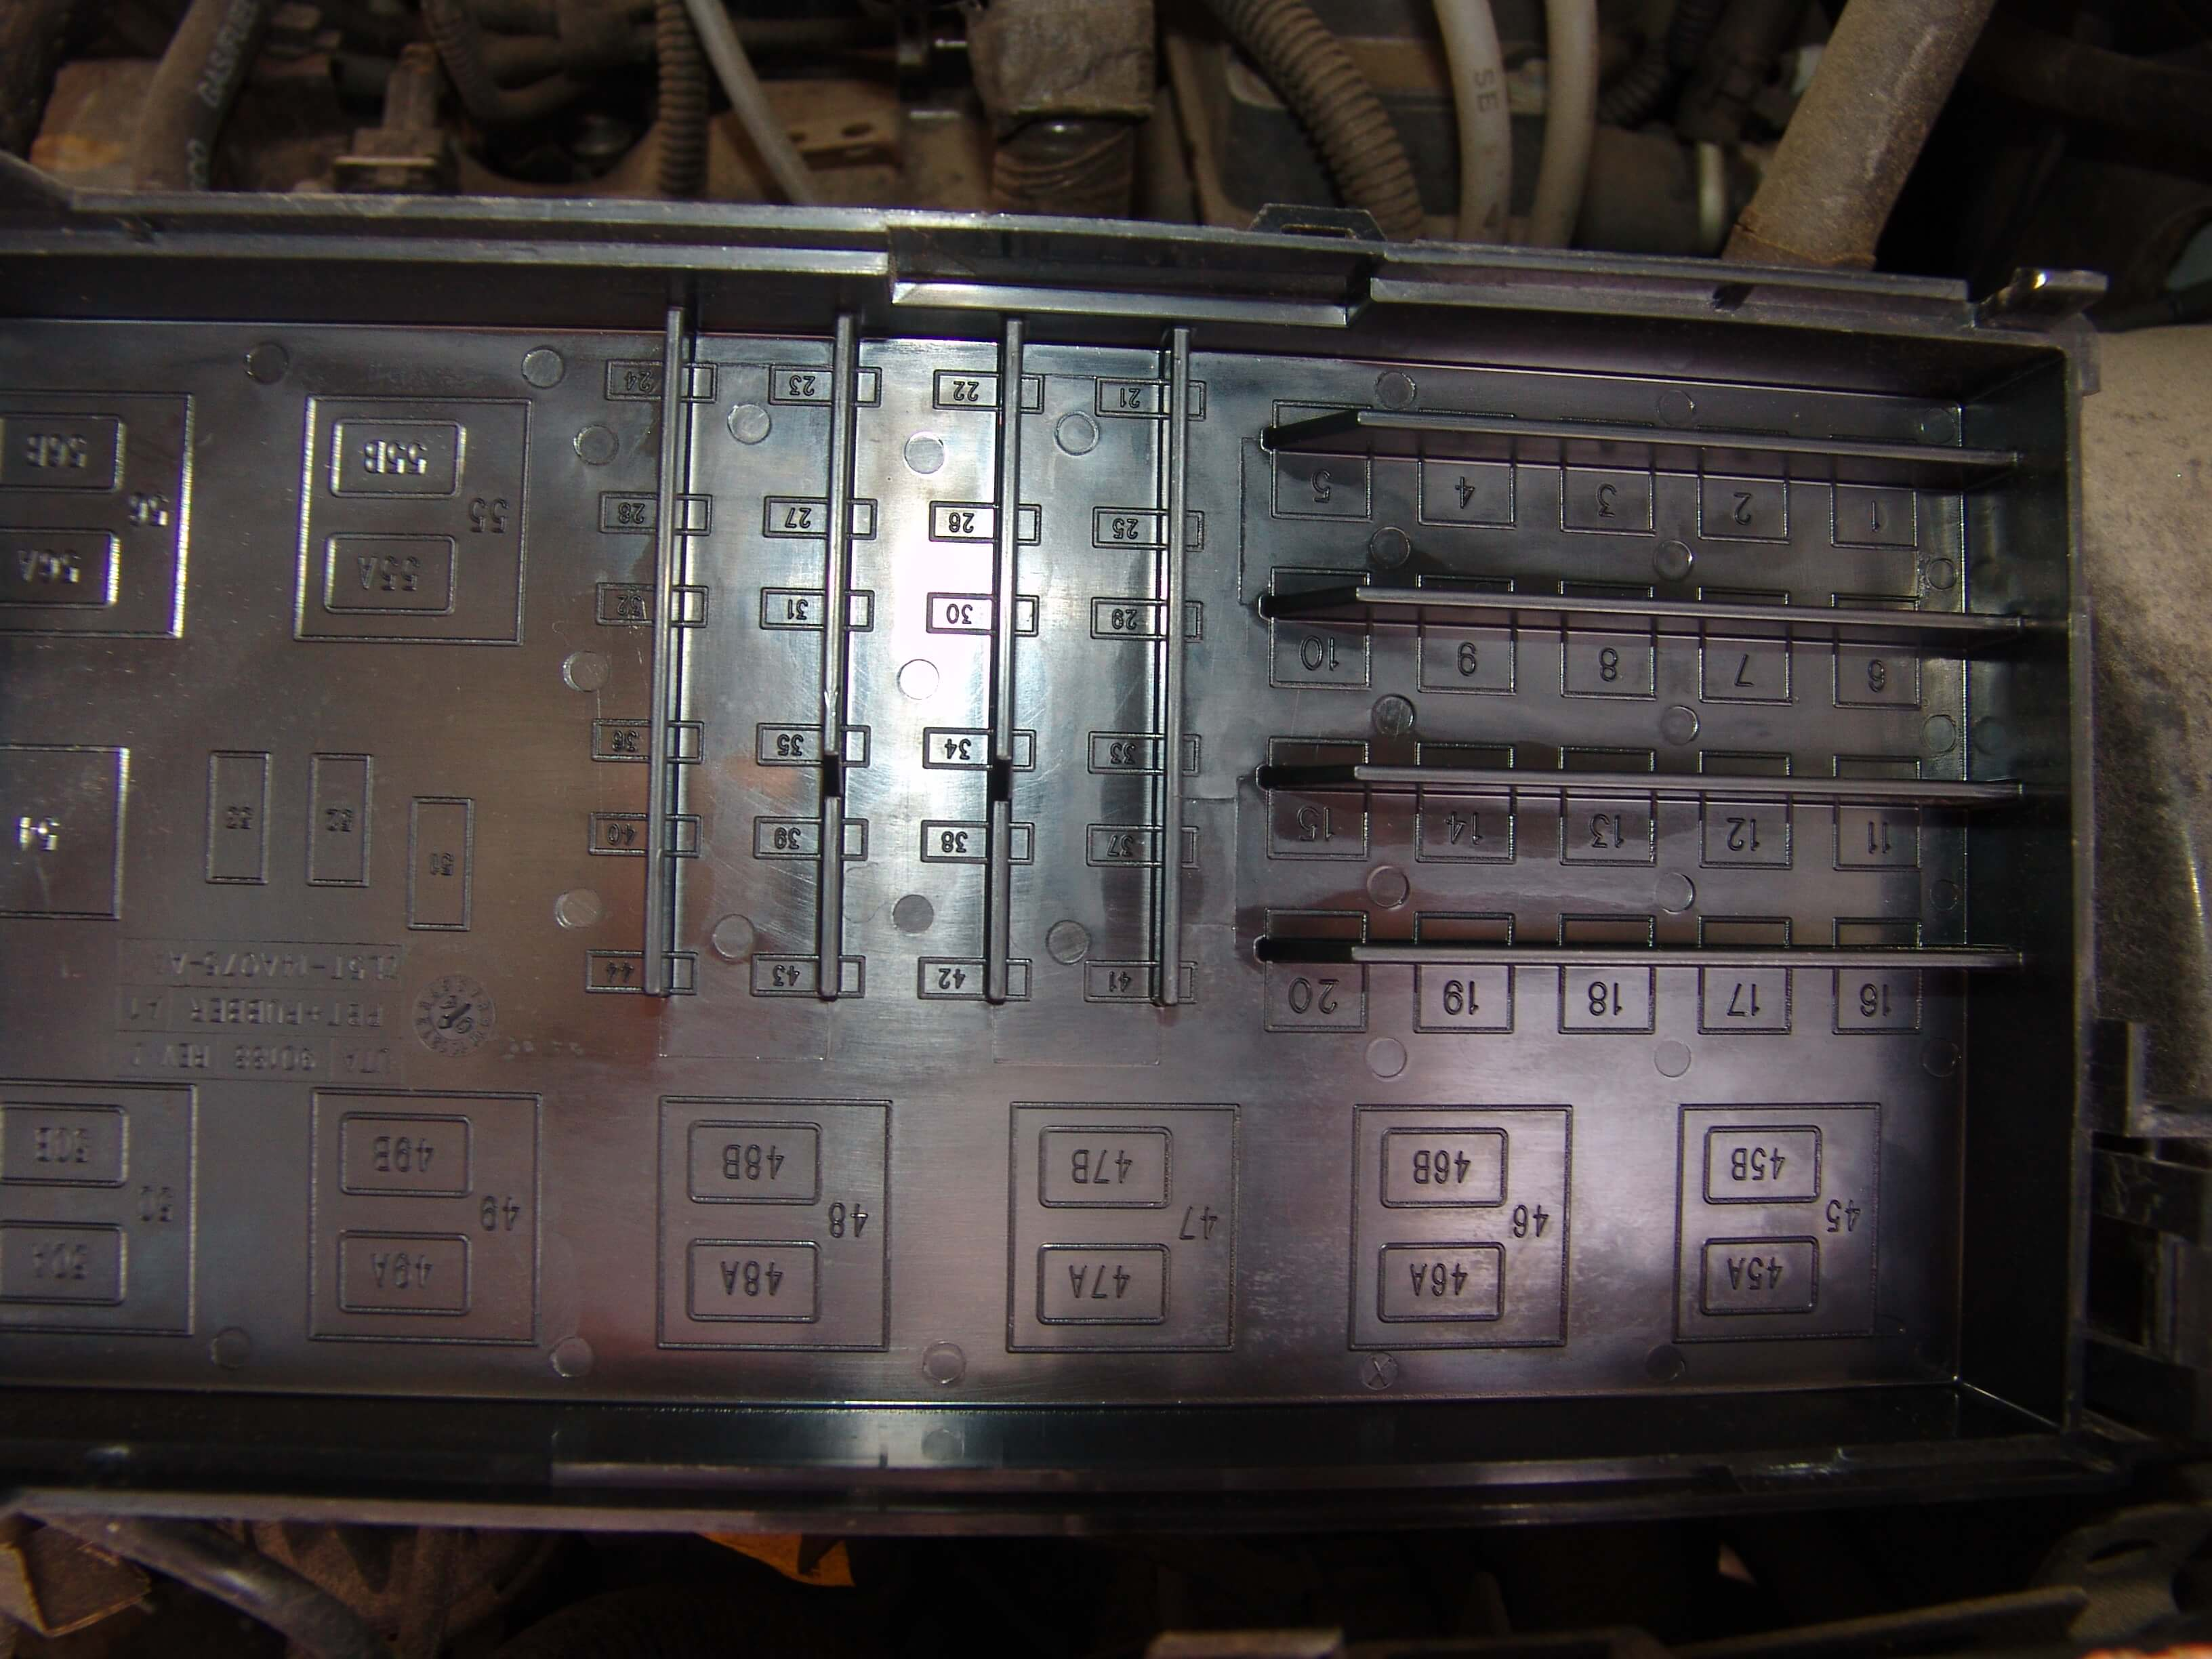 Sparkys Answers 2005 Ford Ranger Gauges Not Working Fuse Box Under Hood Power Comes From The Underhood To Interior Smart Junction Via A Dark Blue Wire I Spotted Fairly Large In Vertical